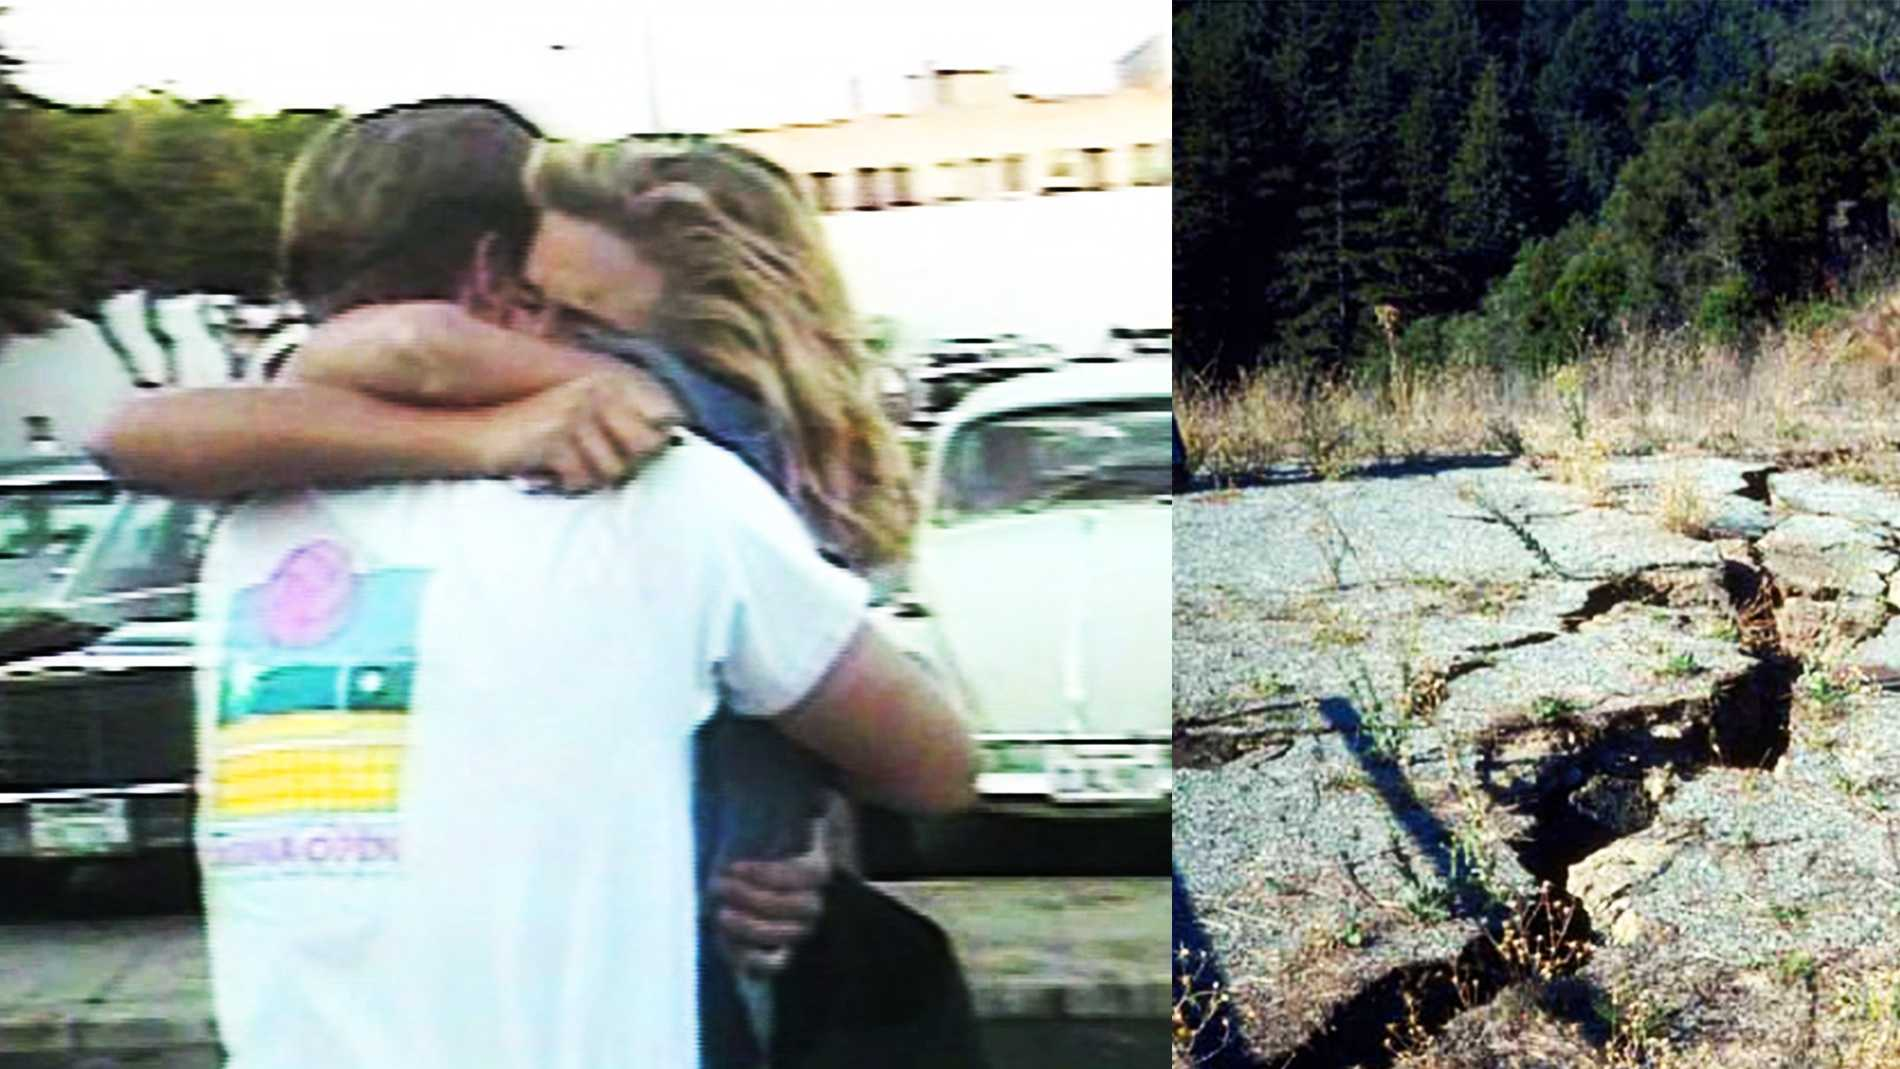 Two people embrace in downtown Santa Cruz immediately after the quake. A large split shows where the ground cracked in the Santa Cruz Mountains.